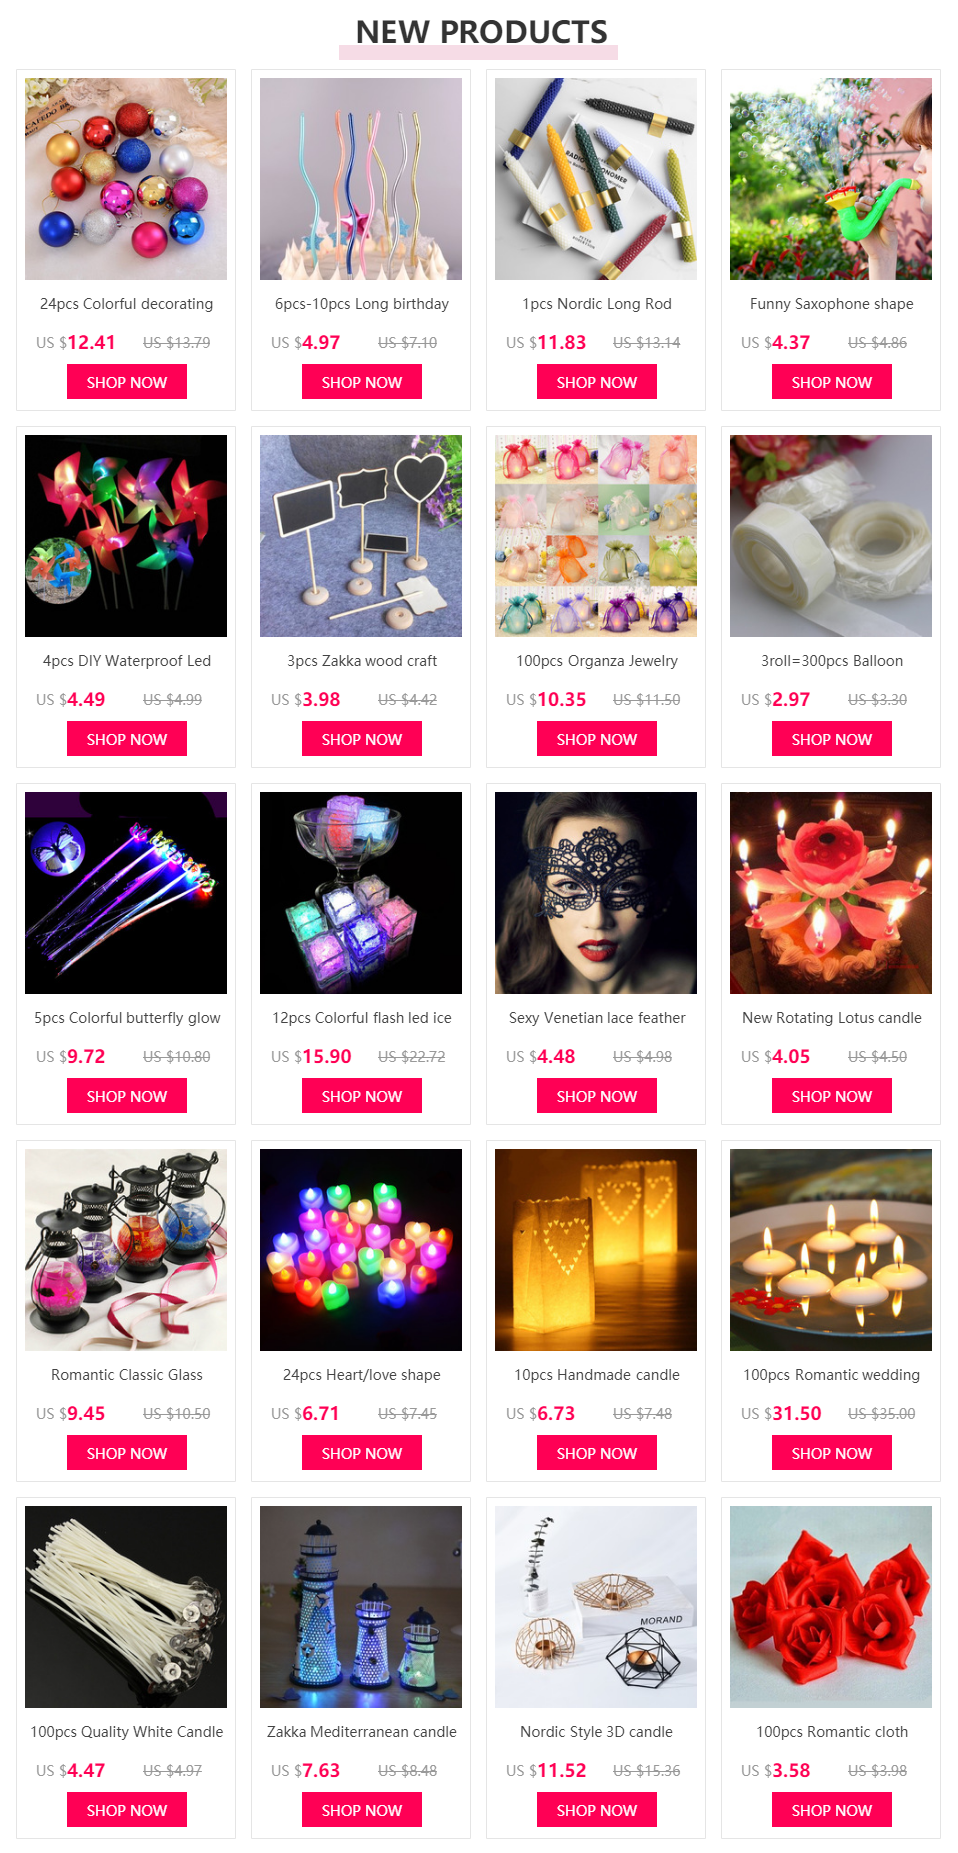 ad3761c9d Http://www.aliexpress.com /store/group/Festive-Party-Supplies/1309166_505978518.html